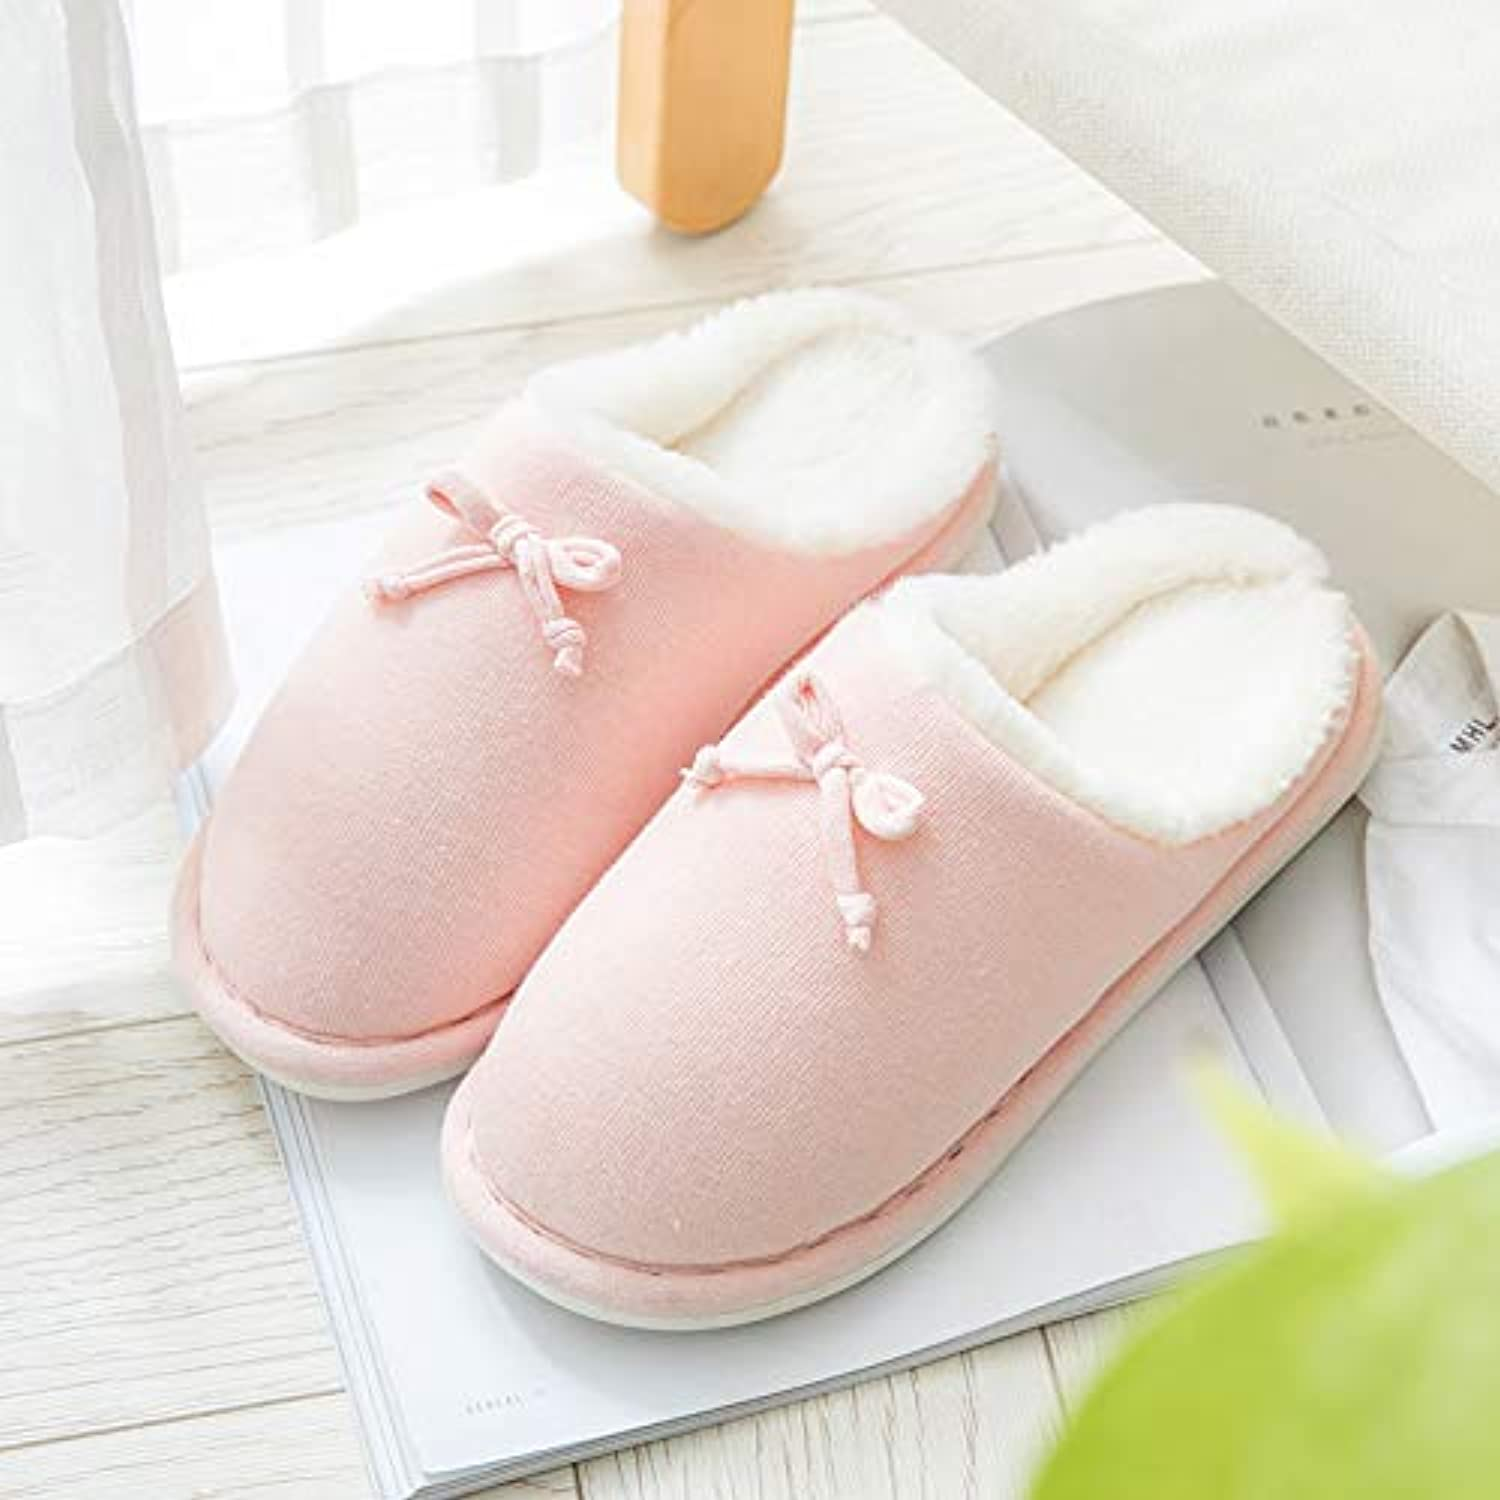 IANXI Home Autumn and Winter Warm Floor Drag Bow tie Couple Cotton Slippers Dormitory Bedroom Moon Cotton Slippers (color   Pink, Size   3)